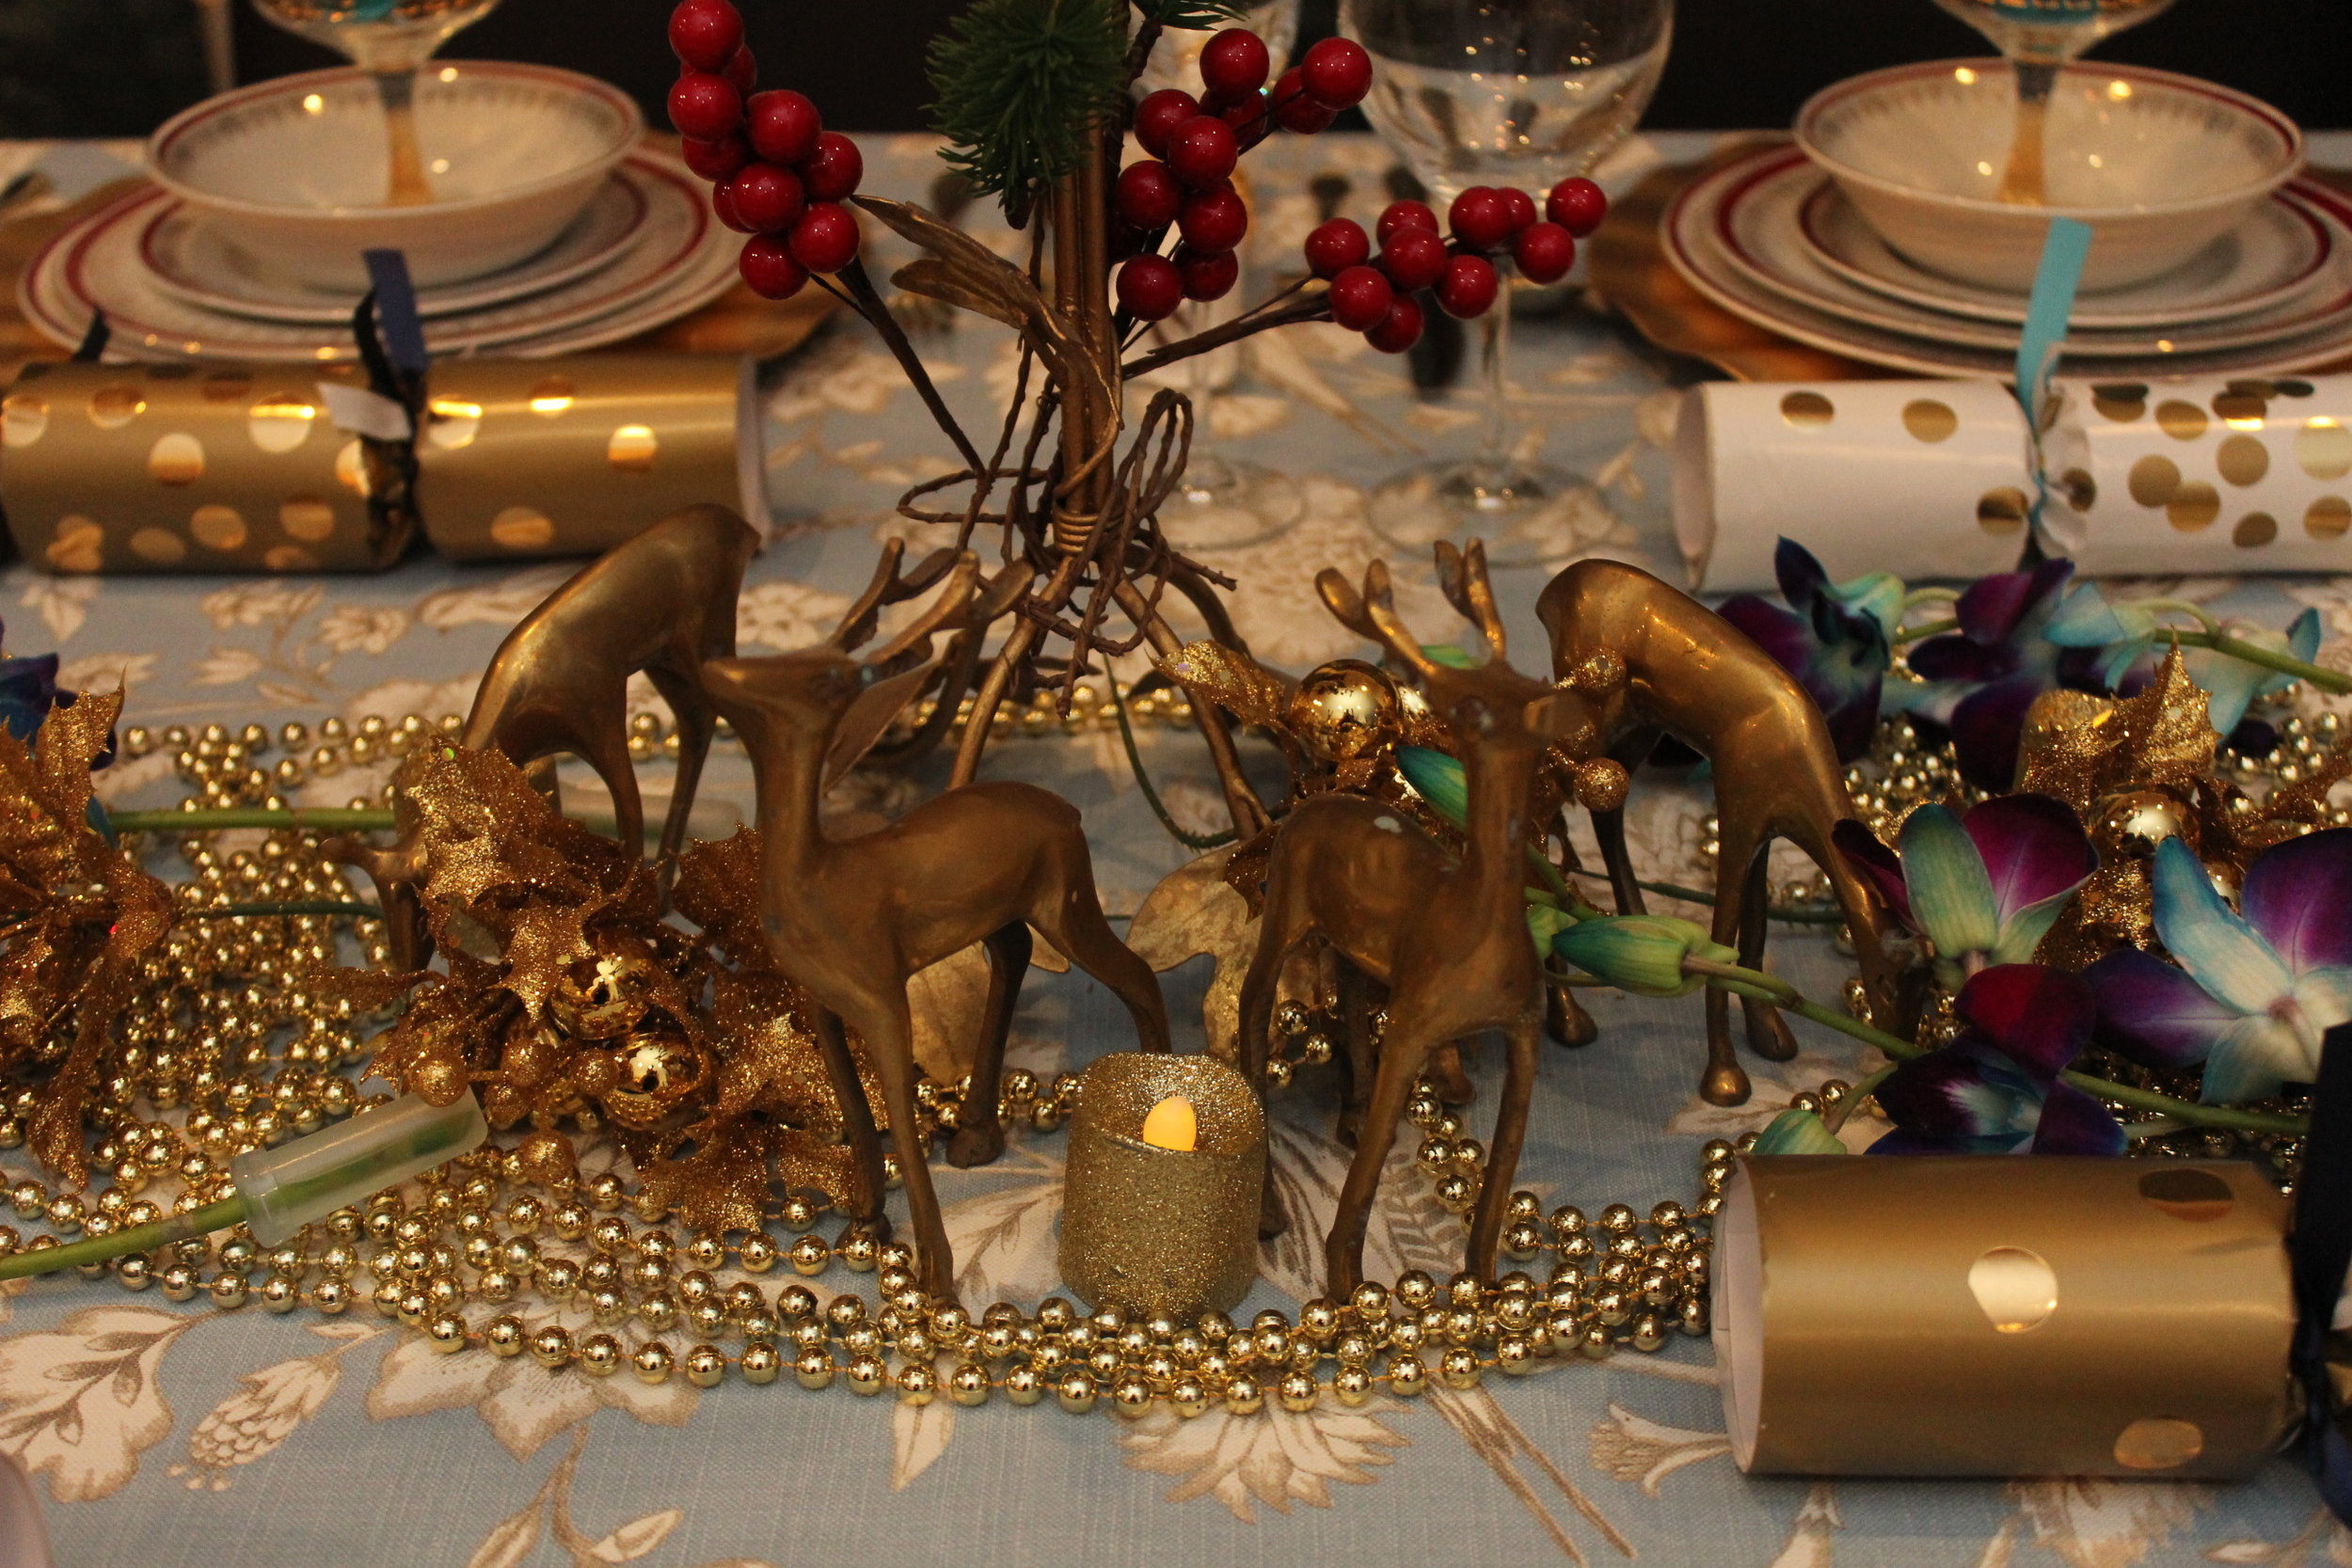 Brass deers grace the table top